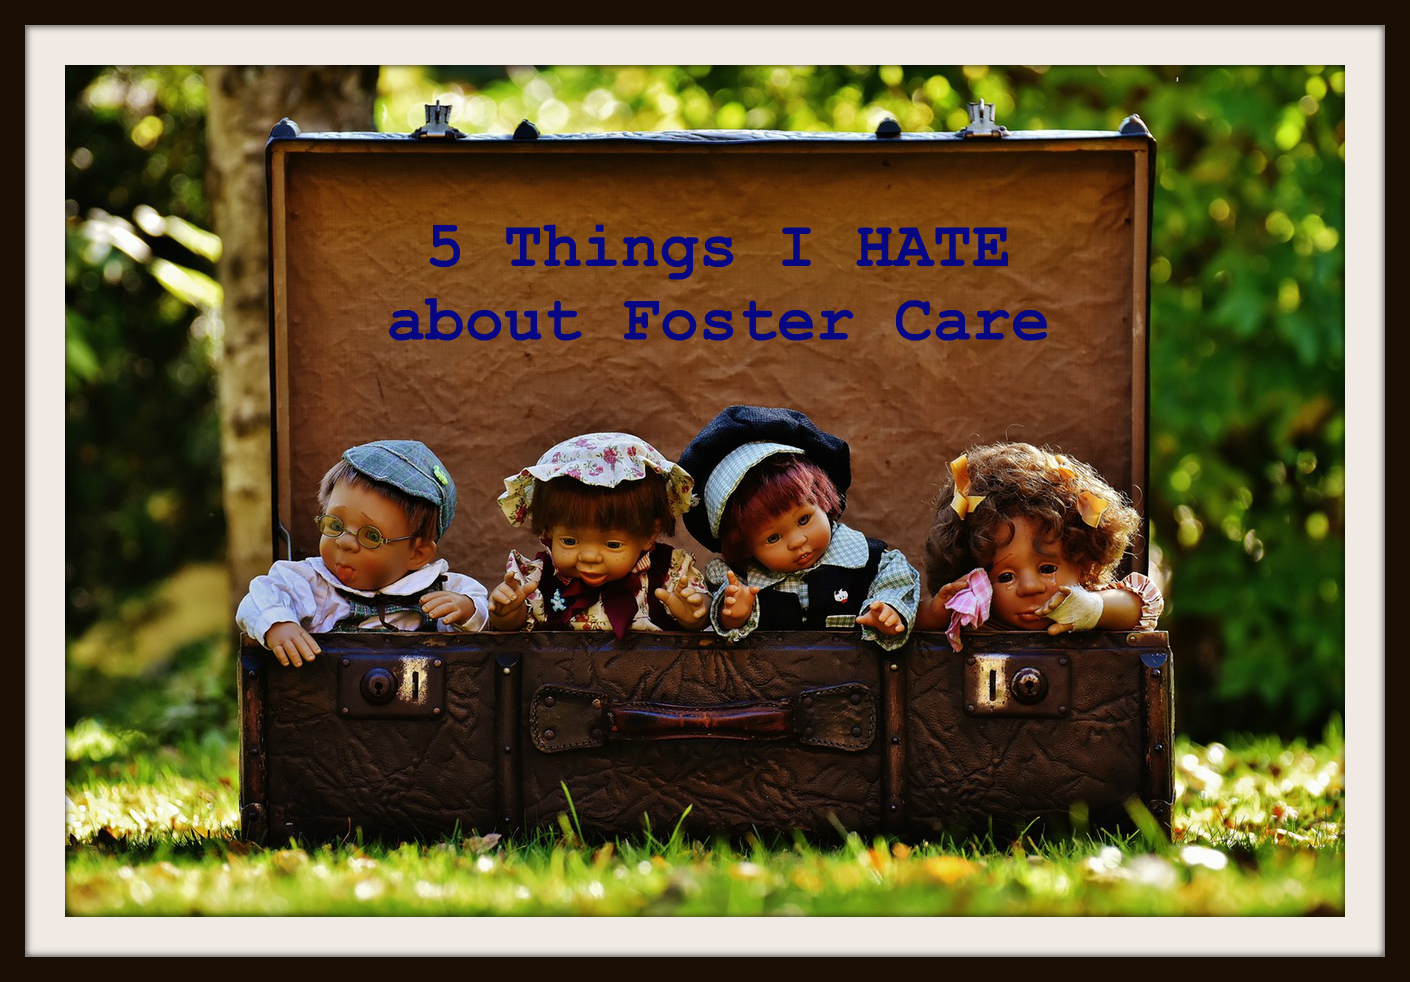 5 things I HATE about Foster Care